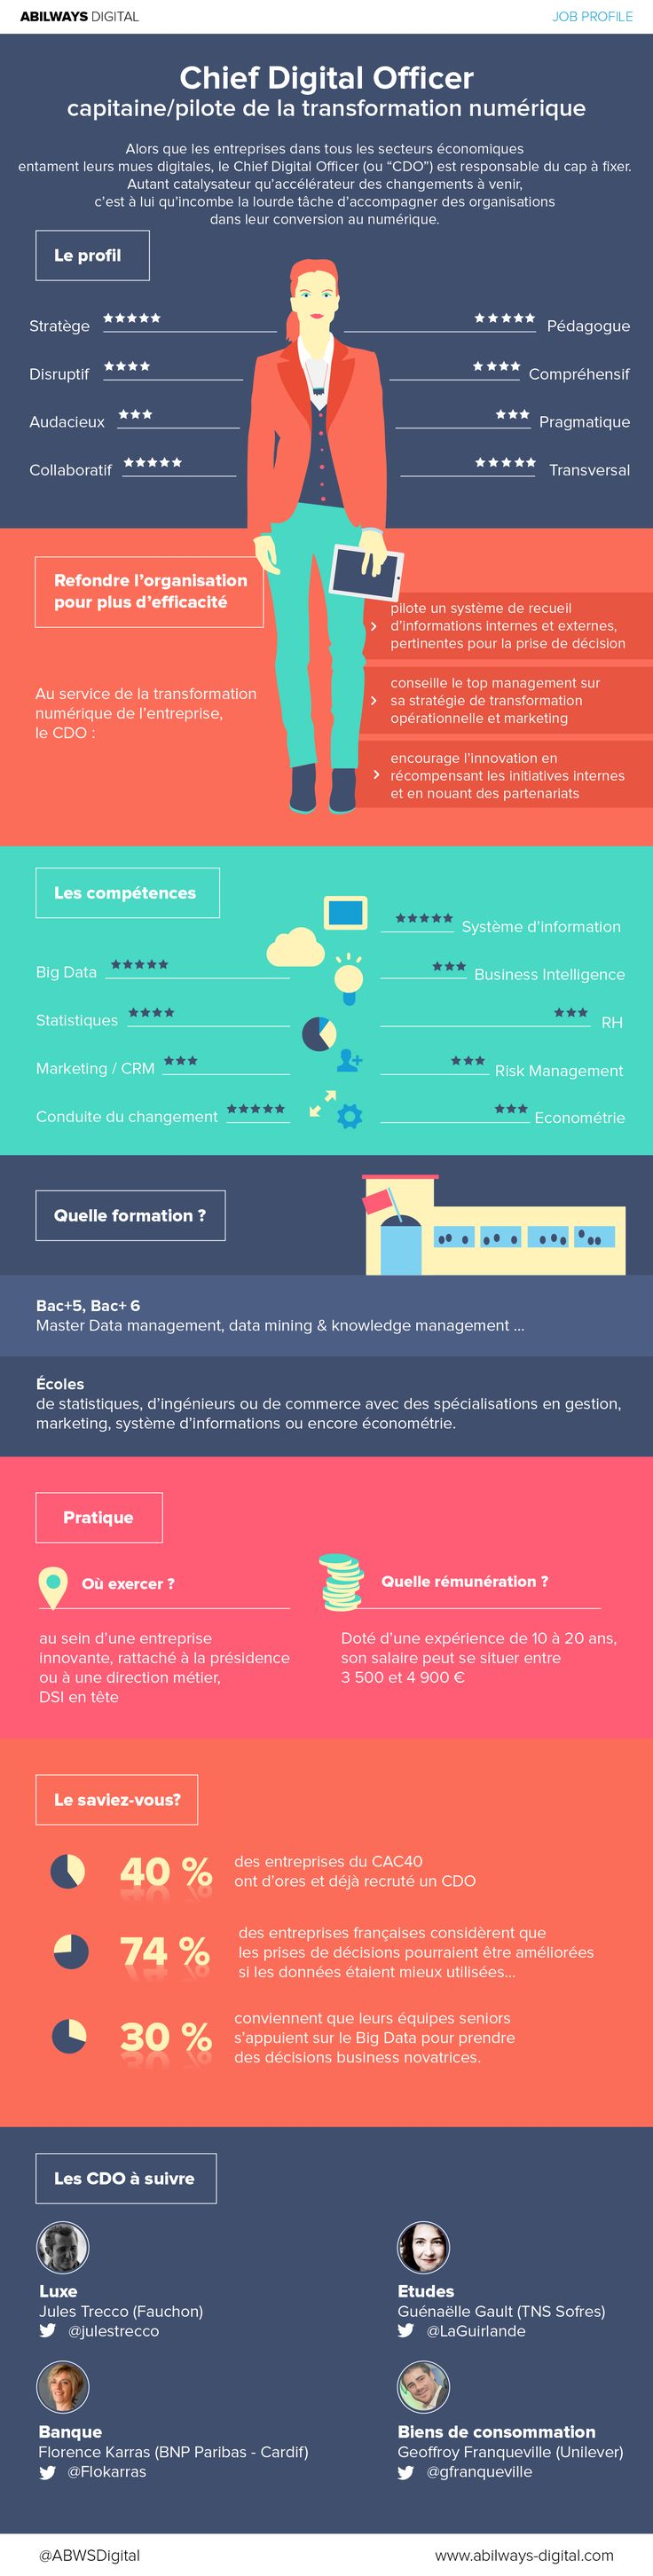 [Infographie] Job profile : Chief Digital Officer, capitaine/pilote de la transformation numérique